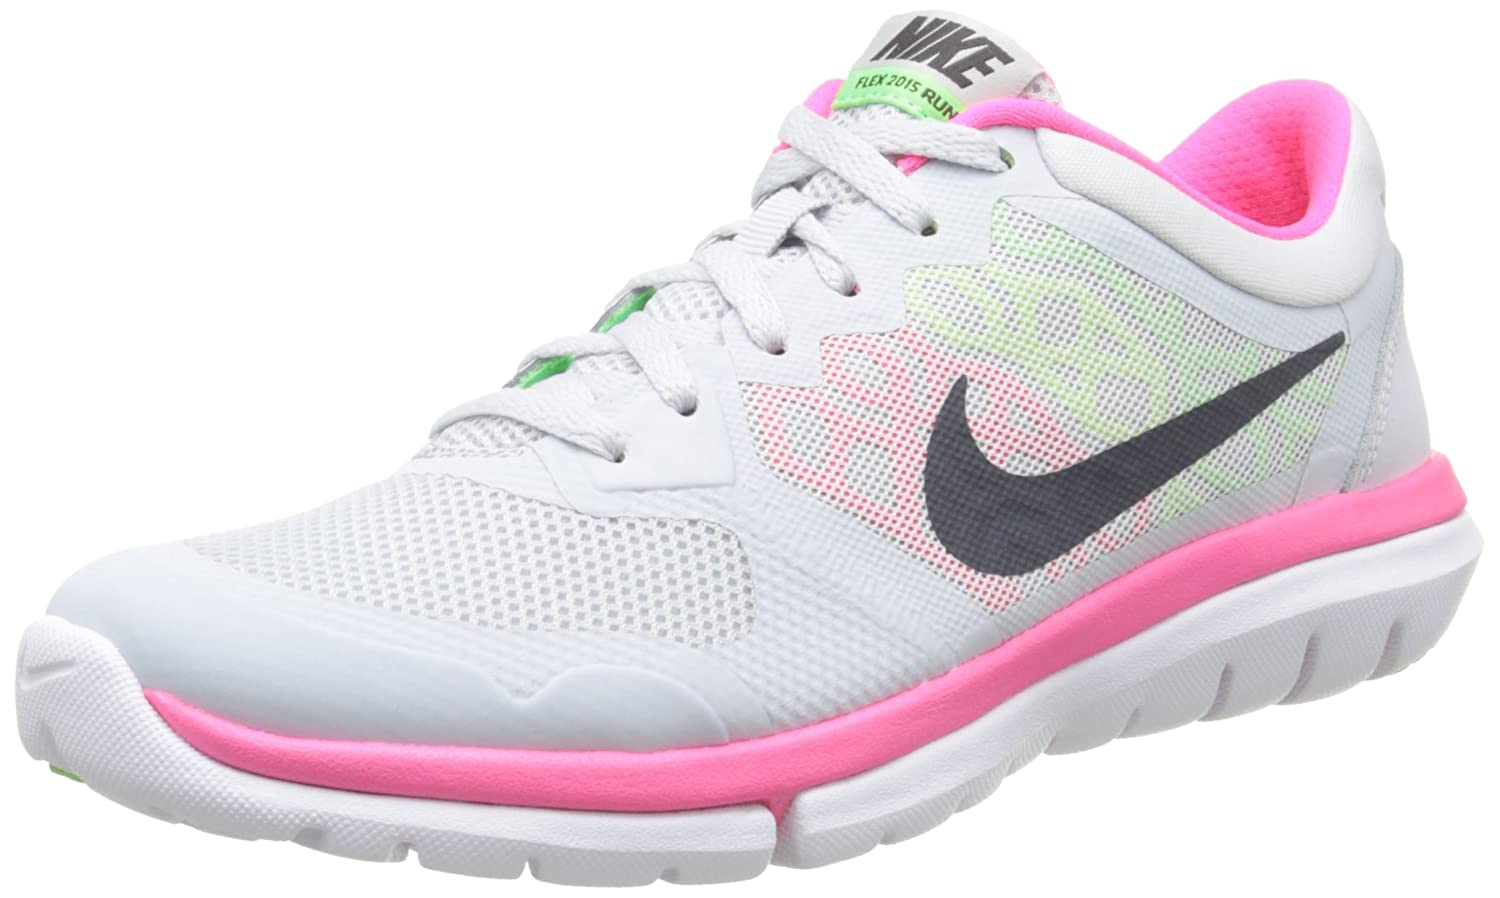 81dcfa888962f8 Nike Women s Flex Run 2015 Running Shoes Pink Size  5.5  Amazon.co ...